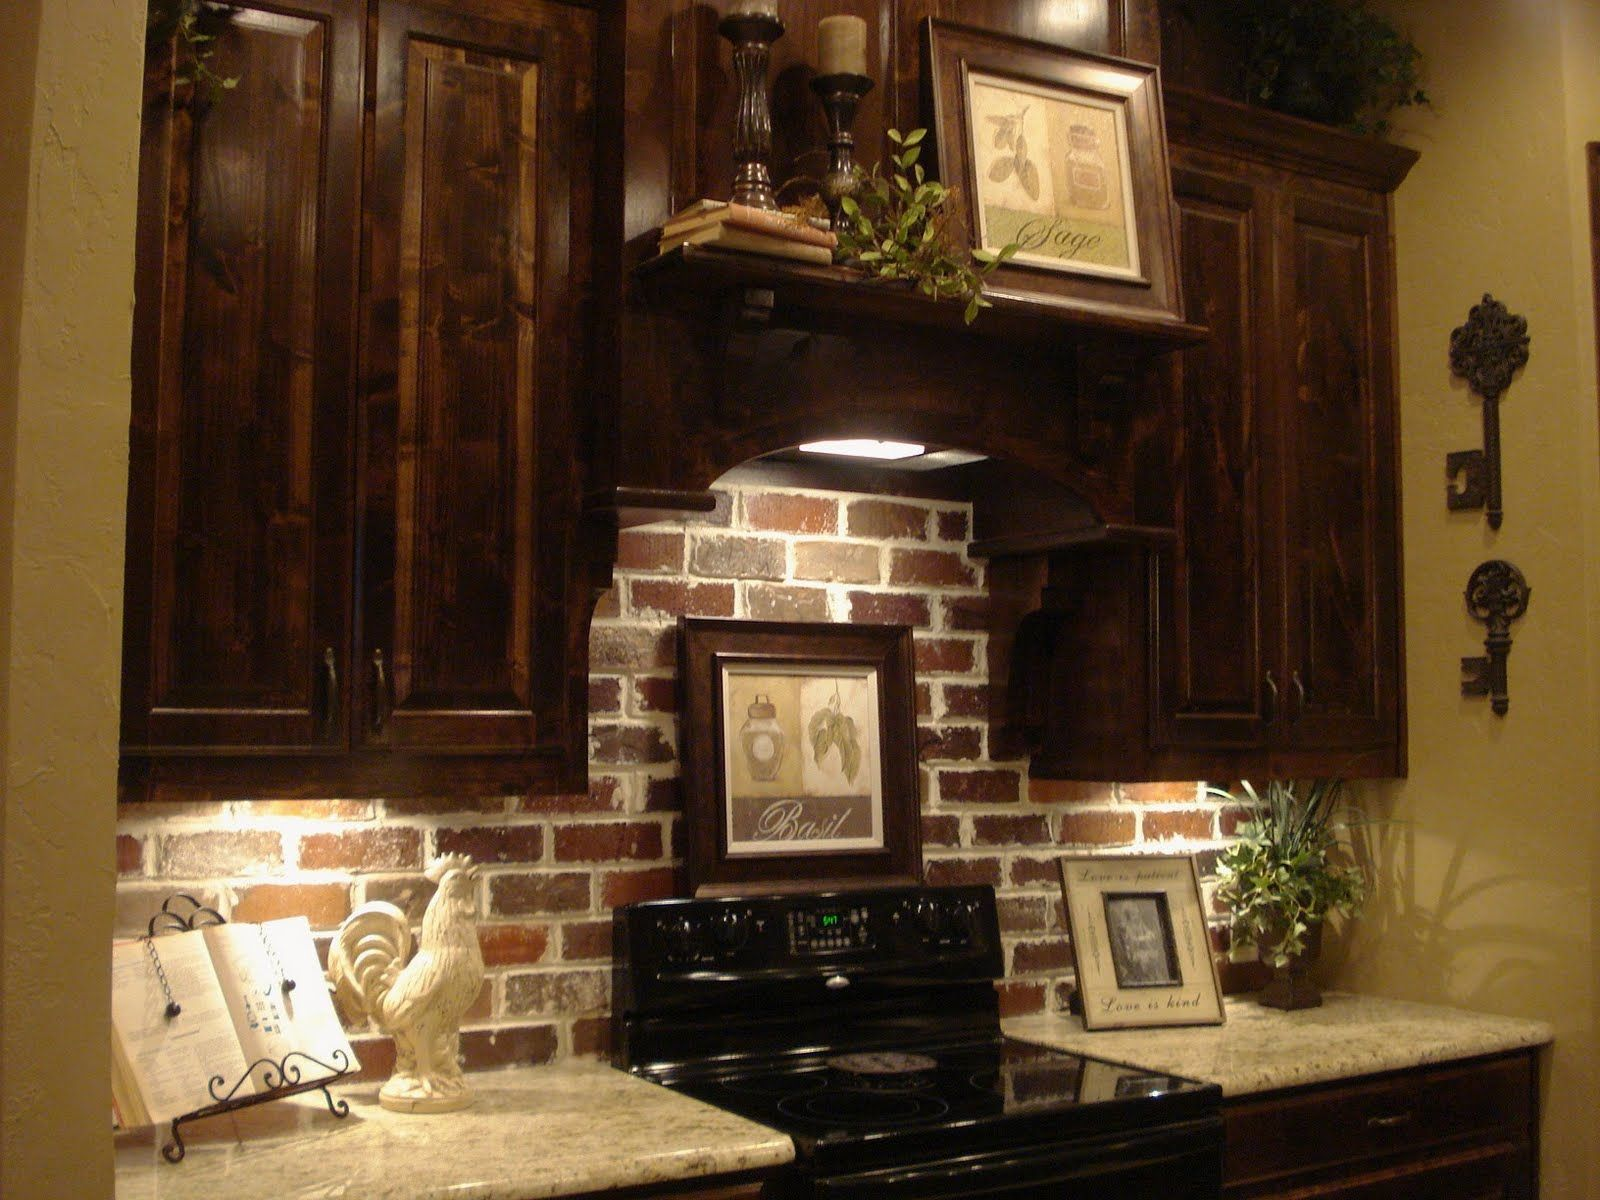 Brick backsplash dark cabinets yes future kitchen the for Kitchen units made of bricks